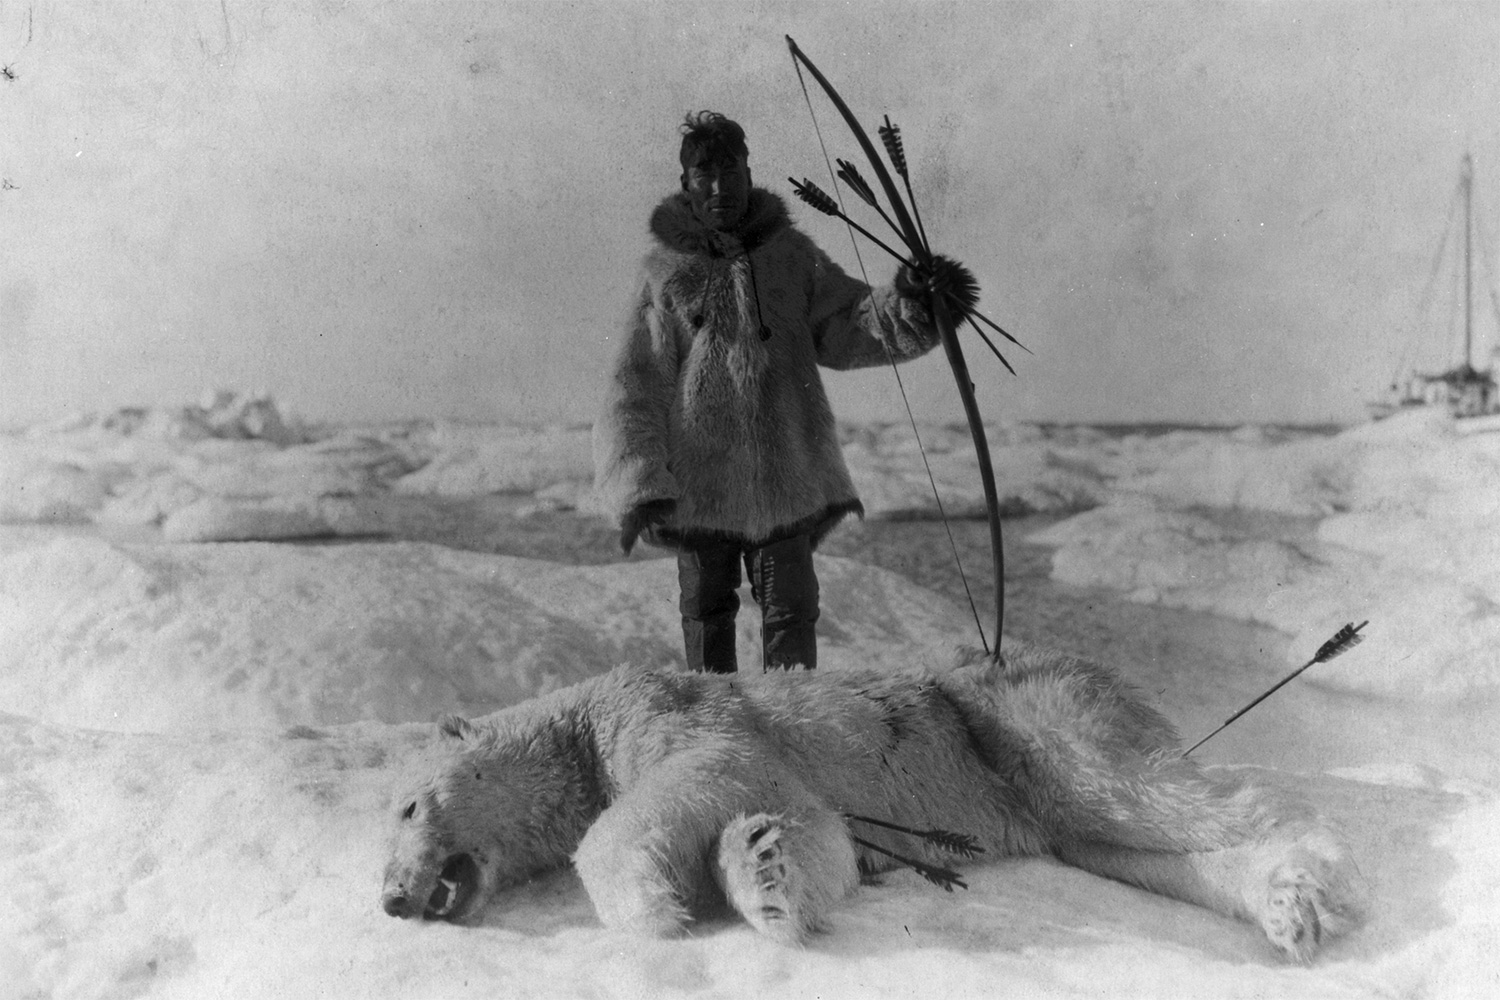 essay about seal hunting The truth behind canada's seal hunt i'm fully against the seal hunting i just know we aren't doing it for our domestic market reply andreas jul 6.